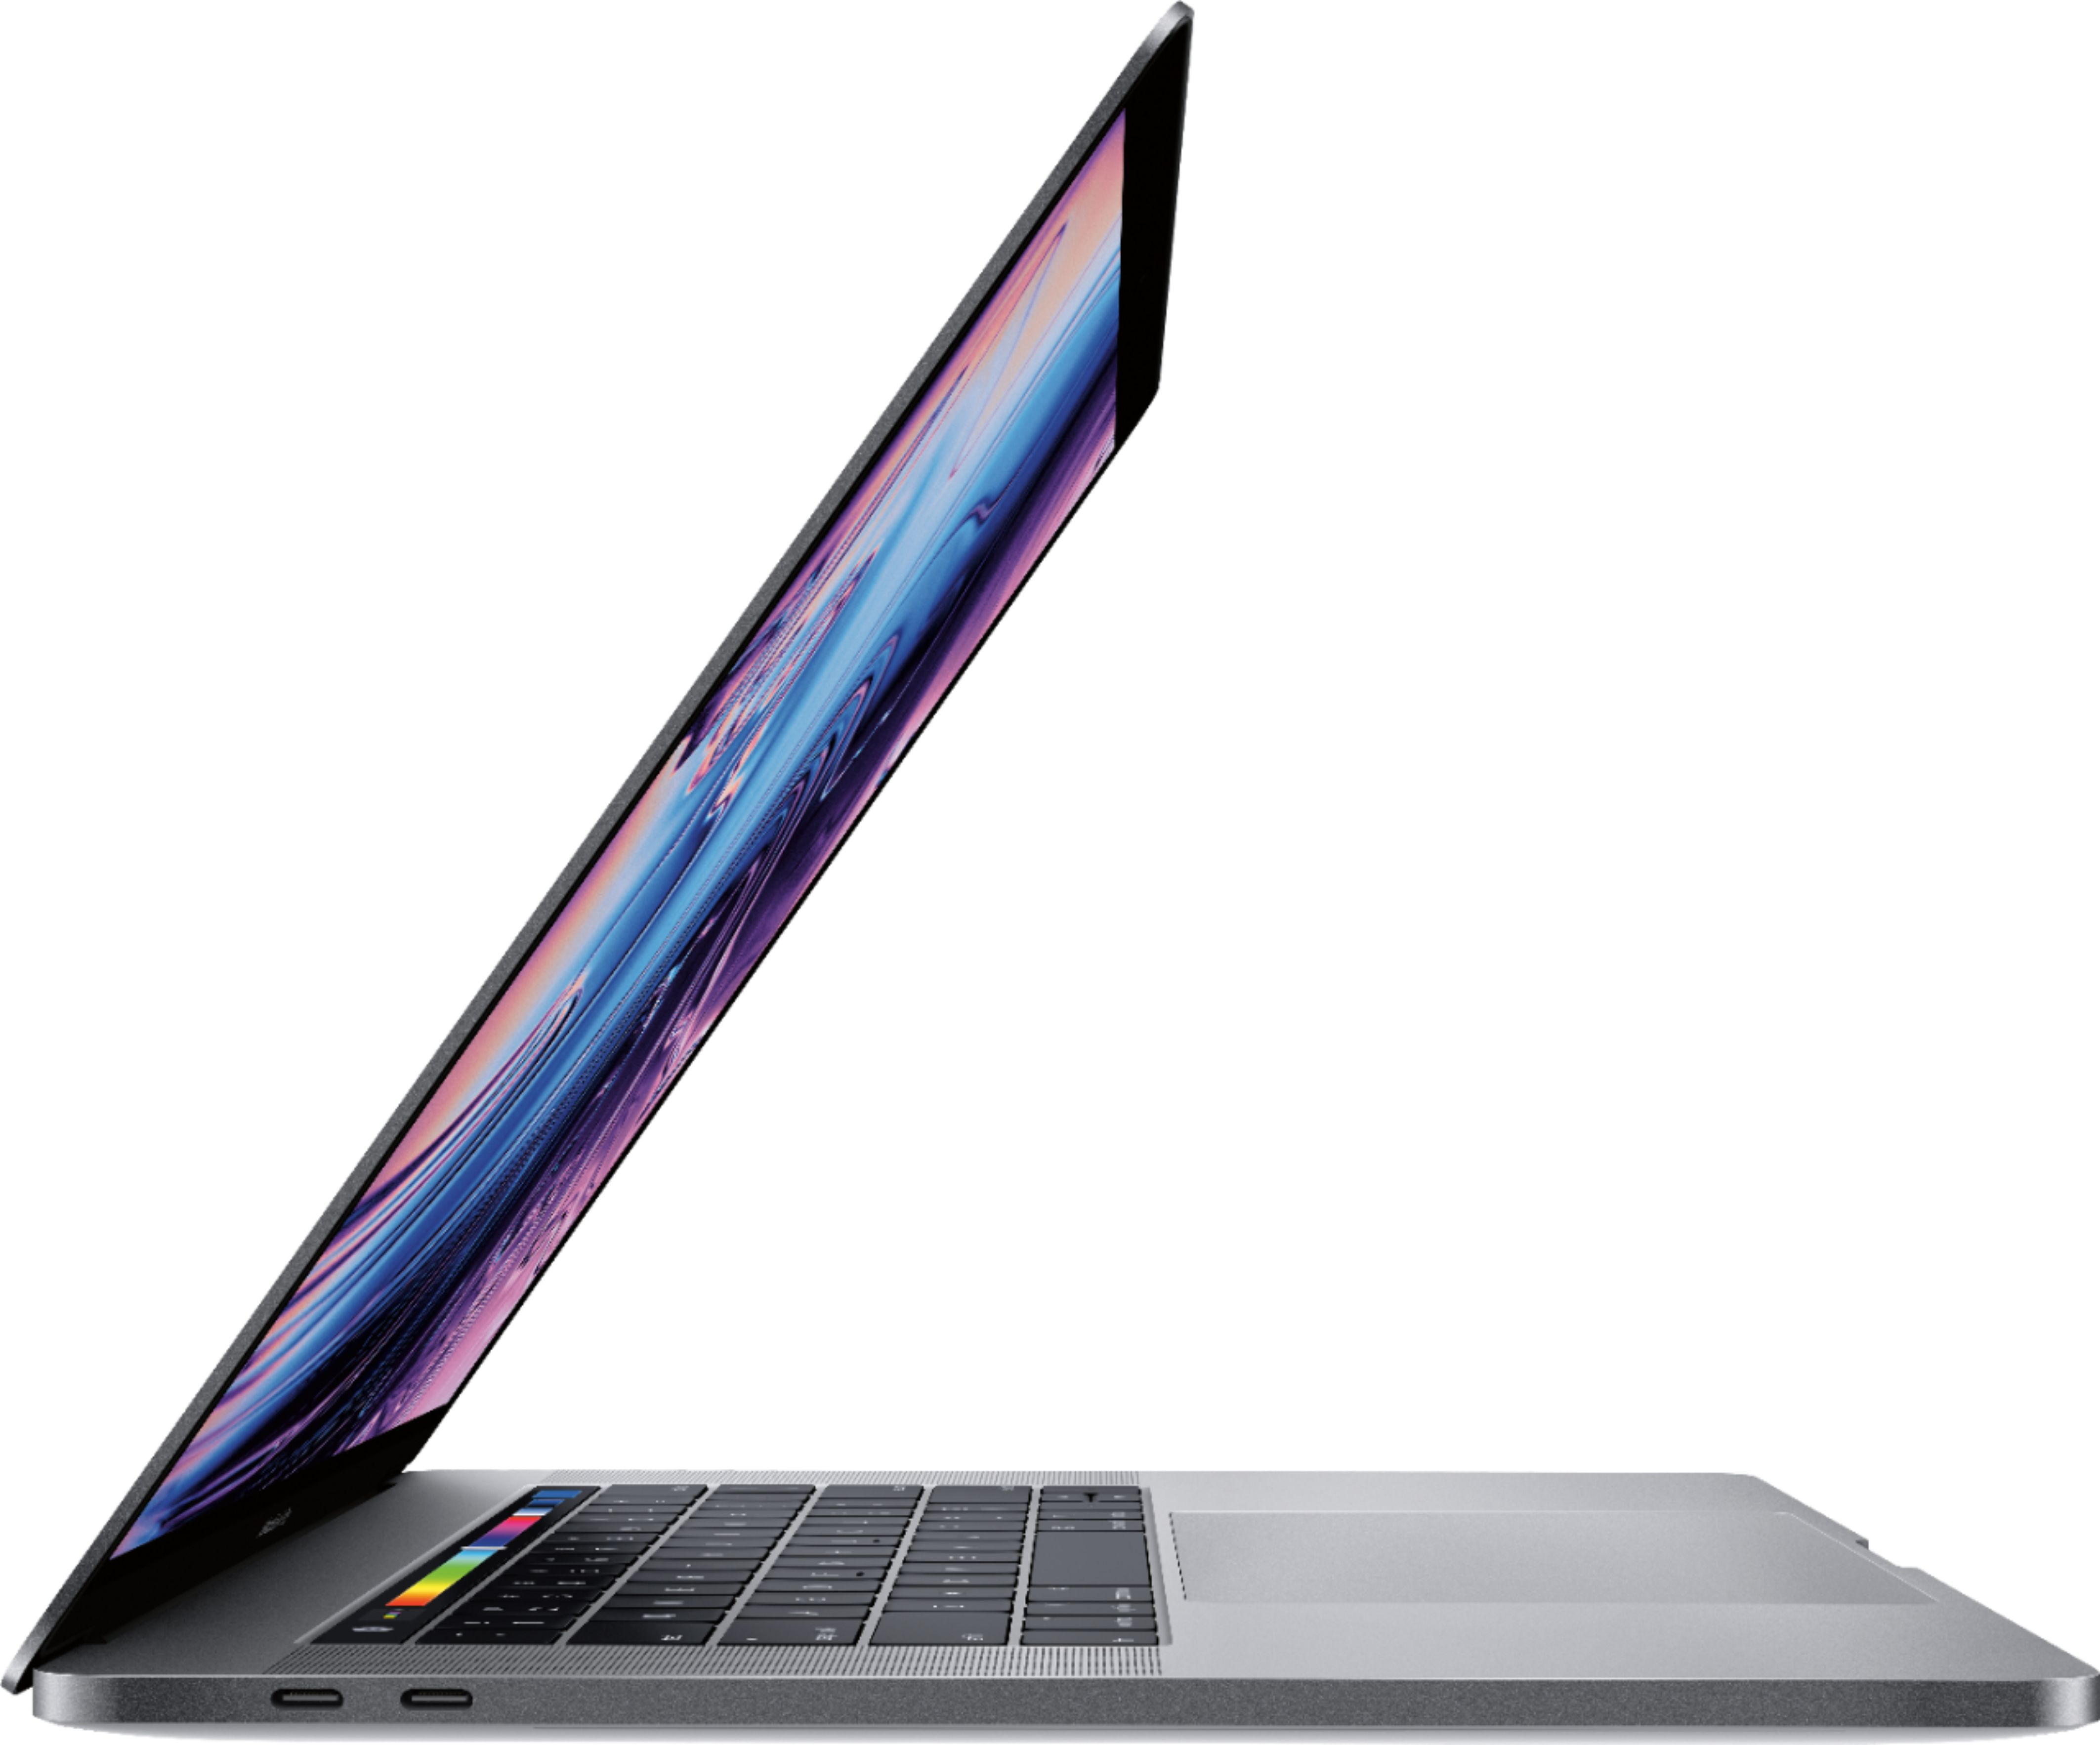 """Alt View Zoom 11. Apple - MacBook Pro 15.4"""" Display with Touch Bar - Intel Core i9 - 32GB Memory - AMD Radeon Pro 555X - 1TB SSD - Space Gray."""